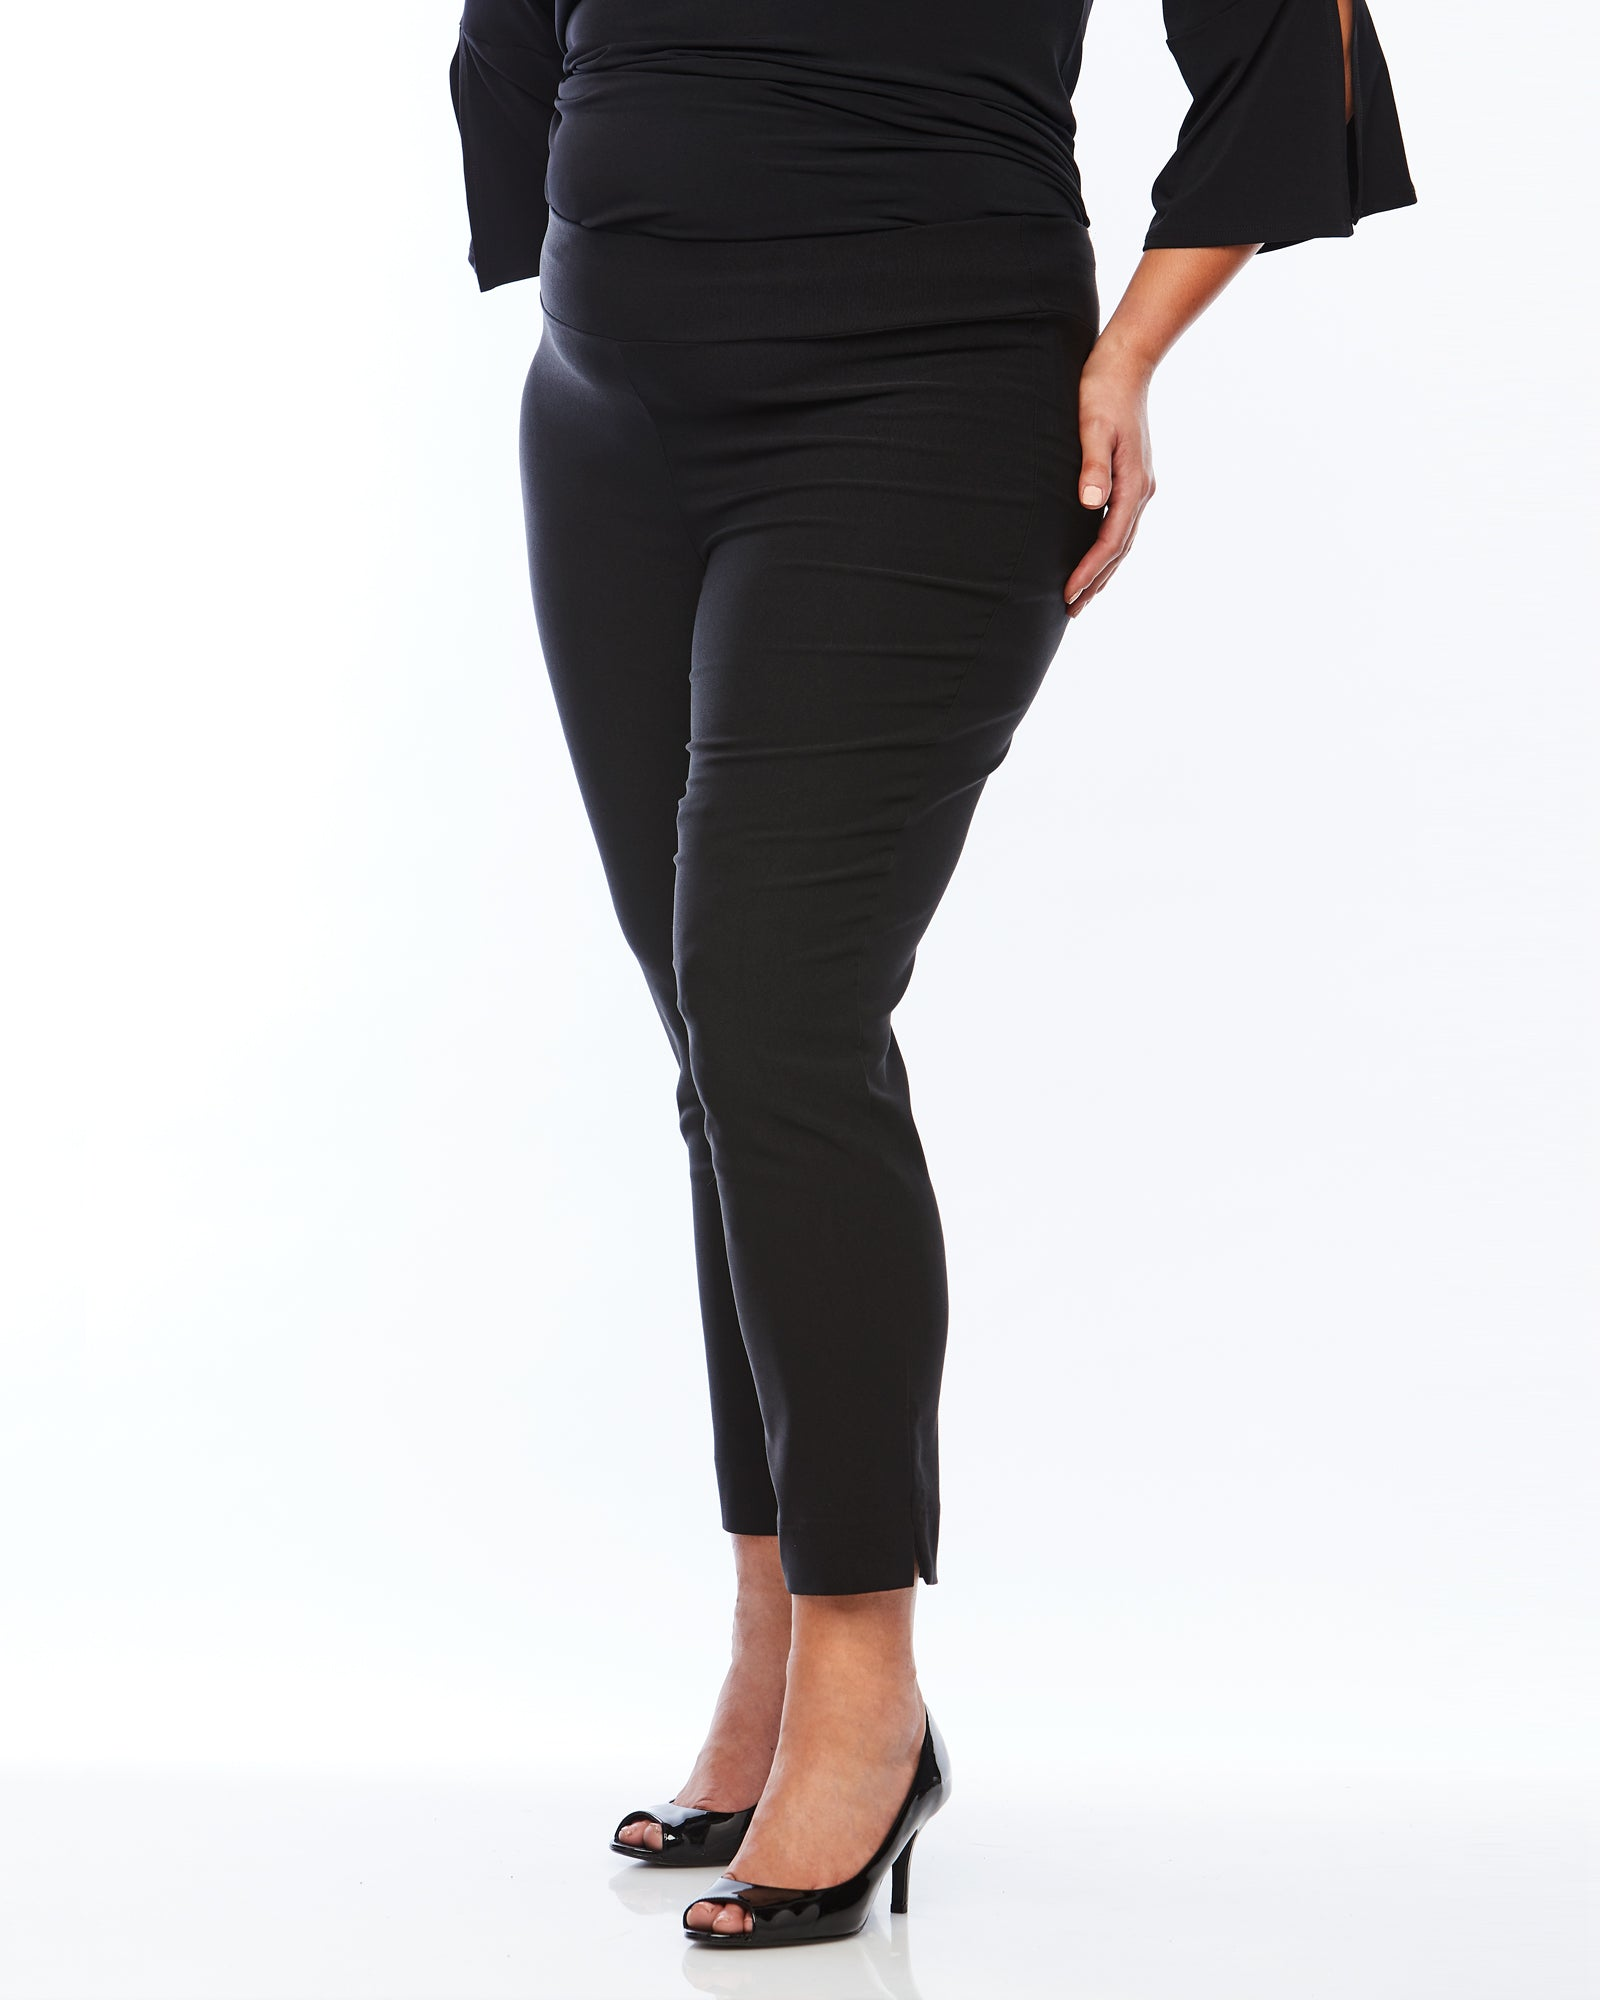 Room To Move Pants, Plus size pants, Black pants